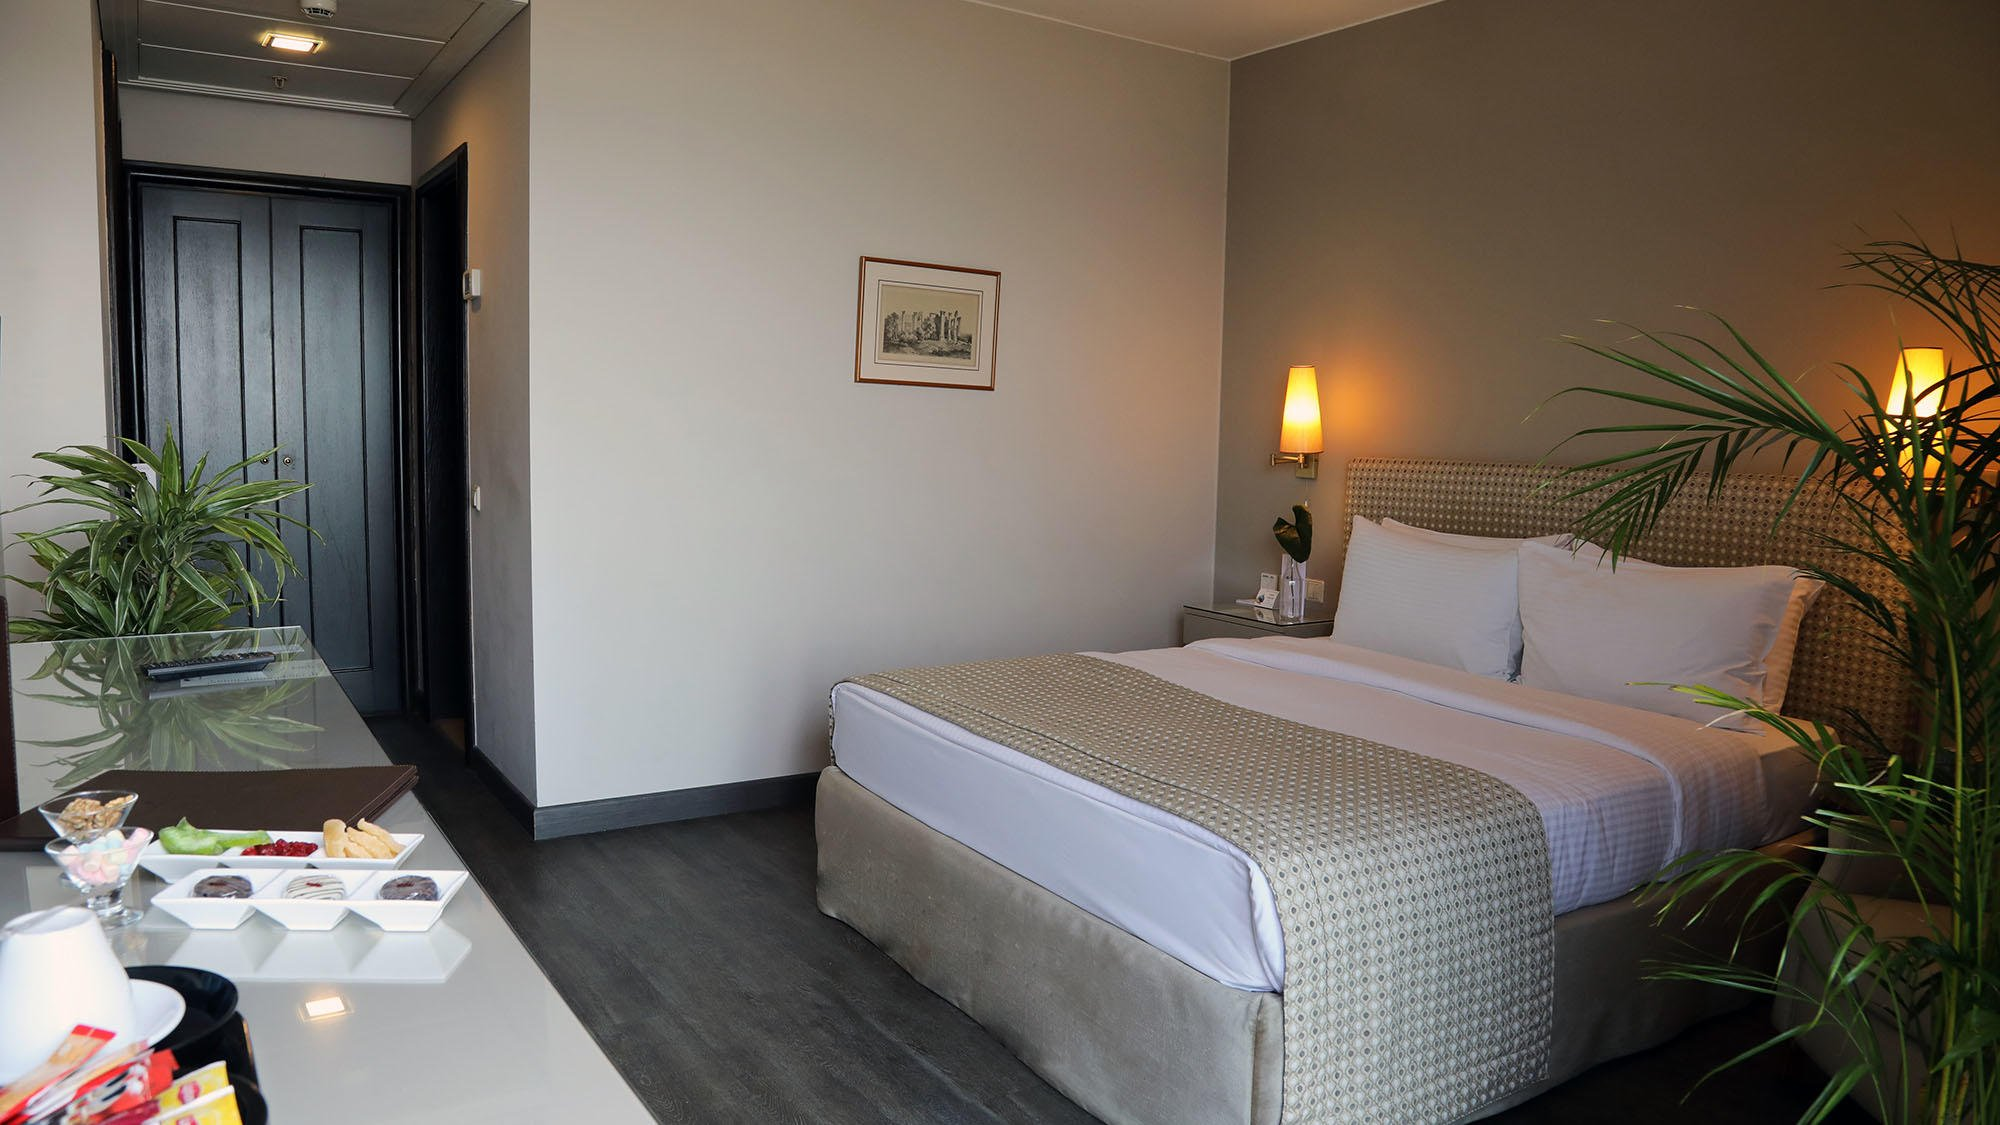 Premium Rooms offer details